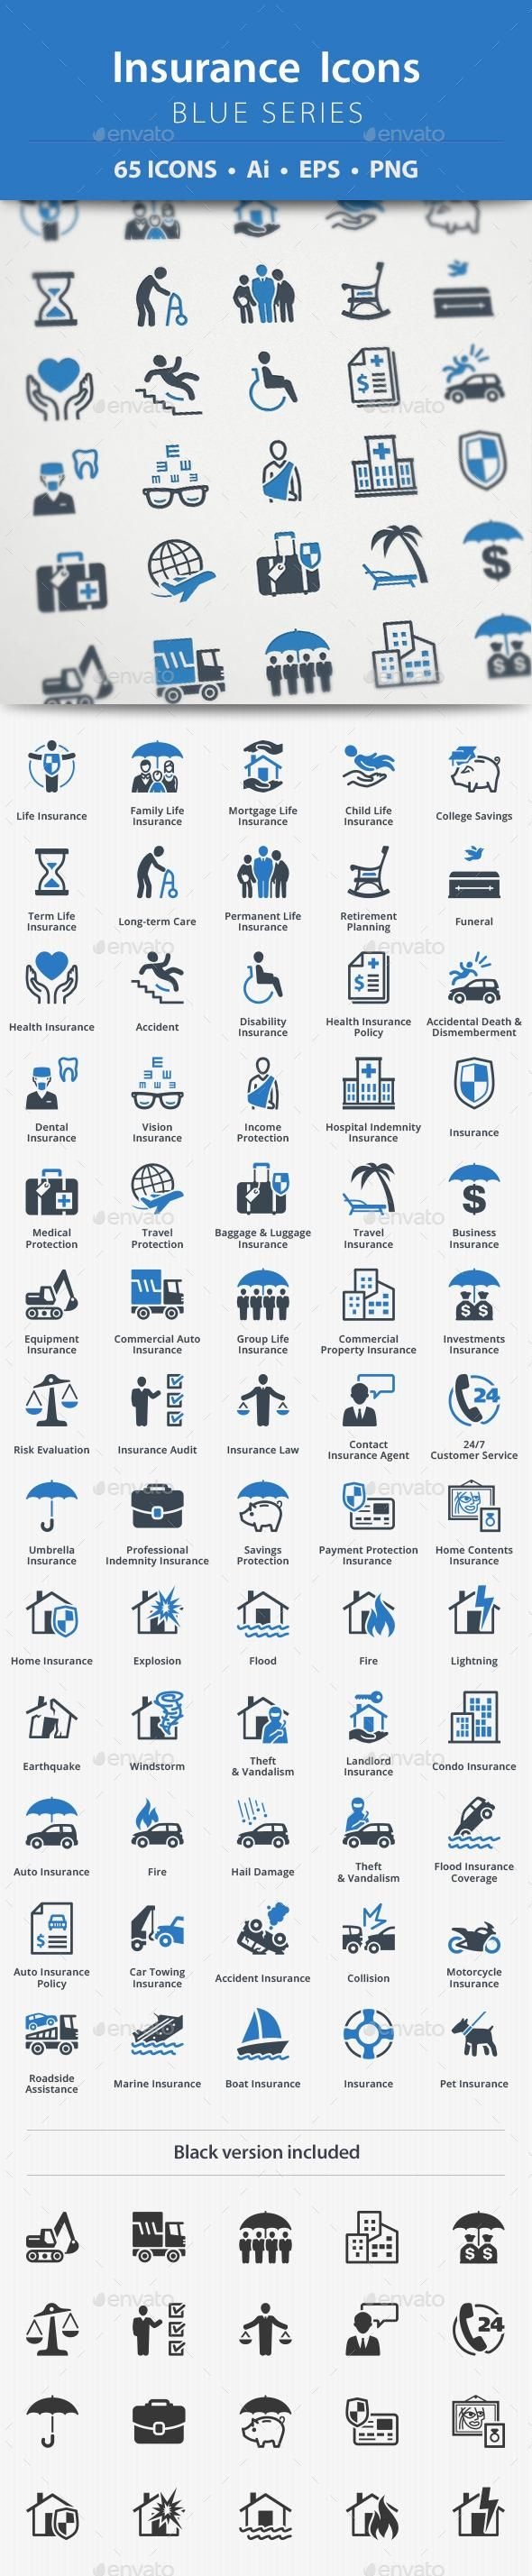 Insurance Icons - Blue Series